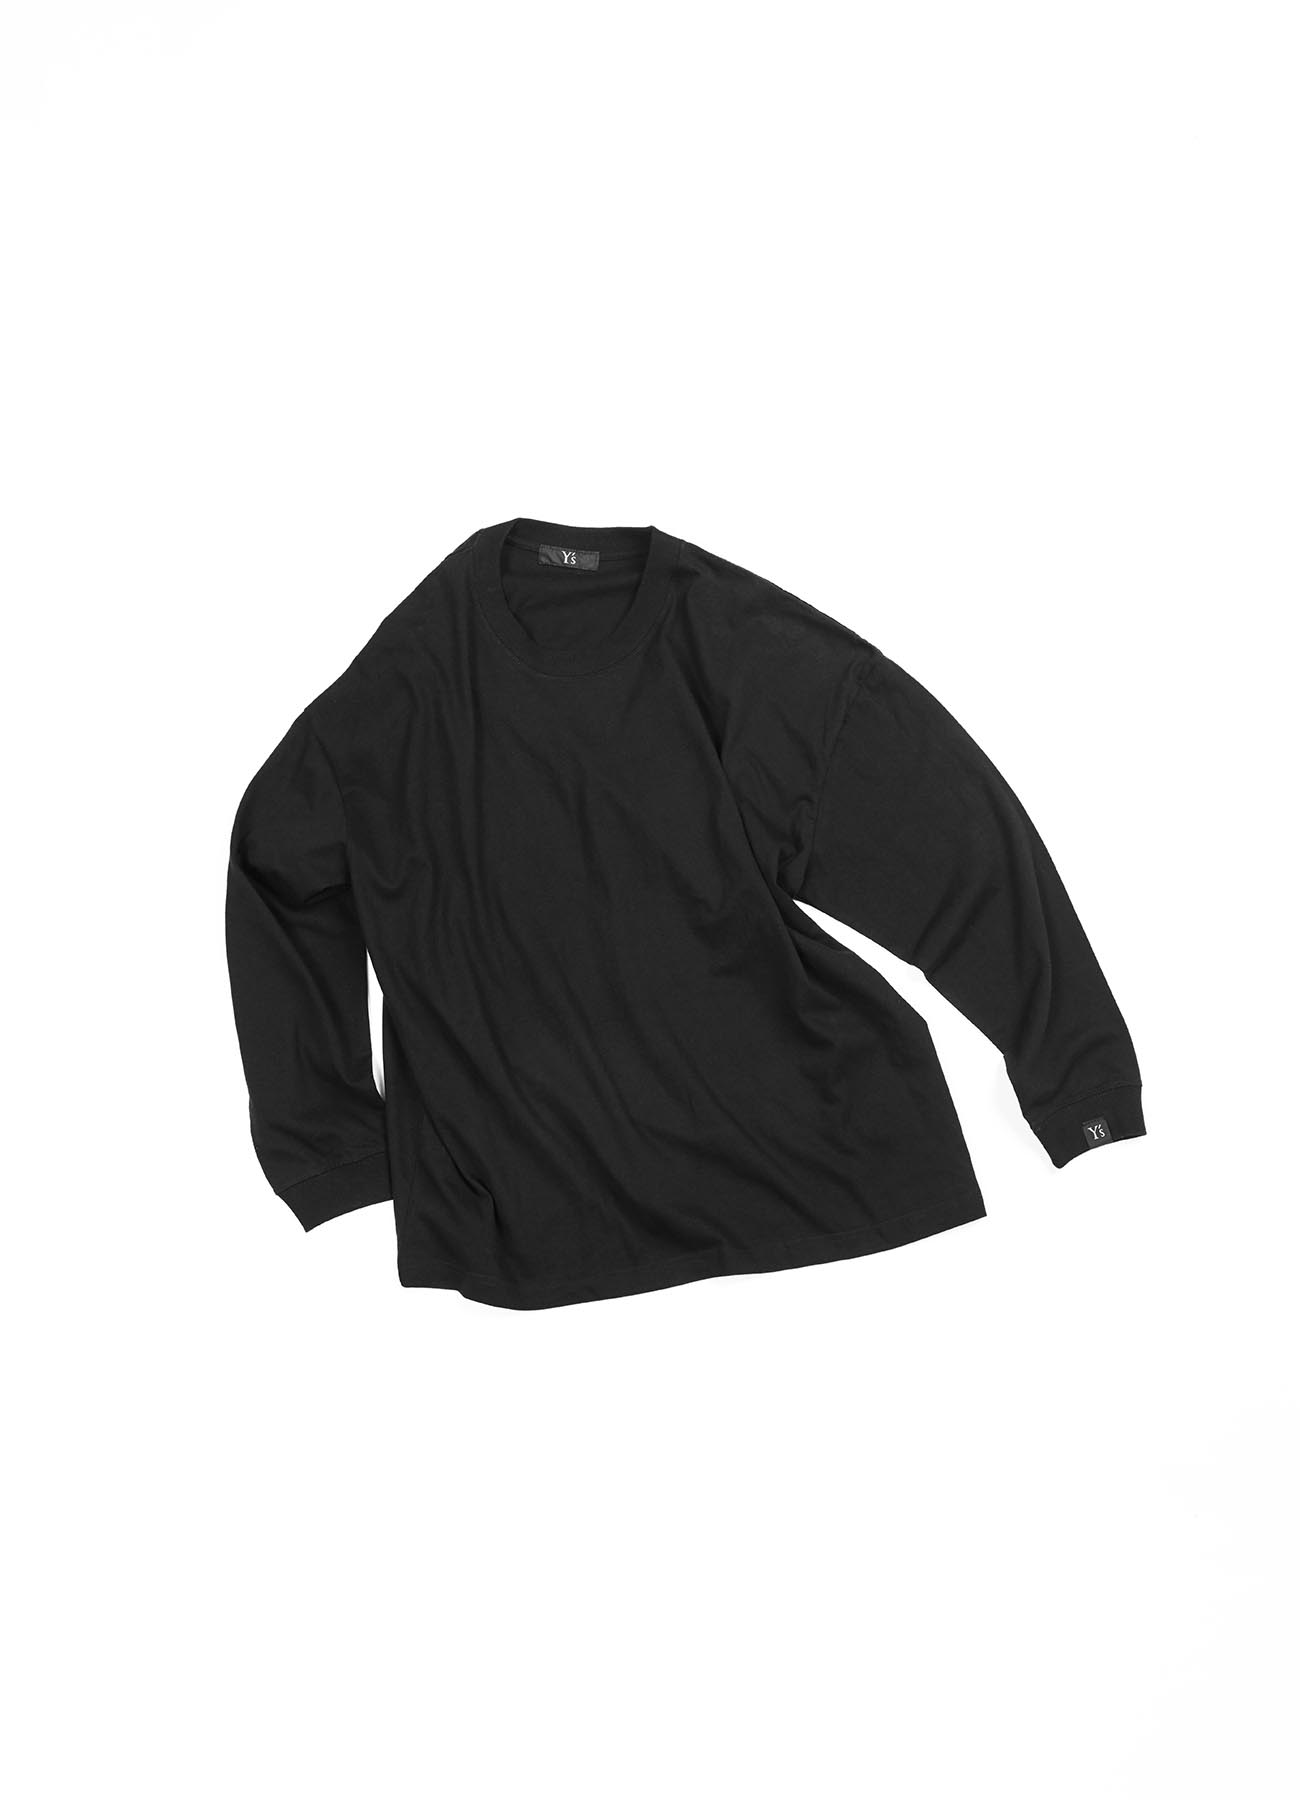 -Online EXCLUSIVE- Y's logo Long sleeve T-shirts (Wide)